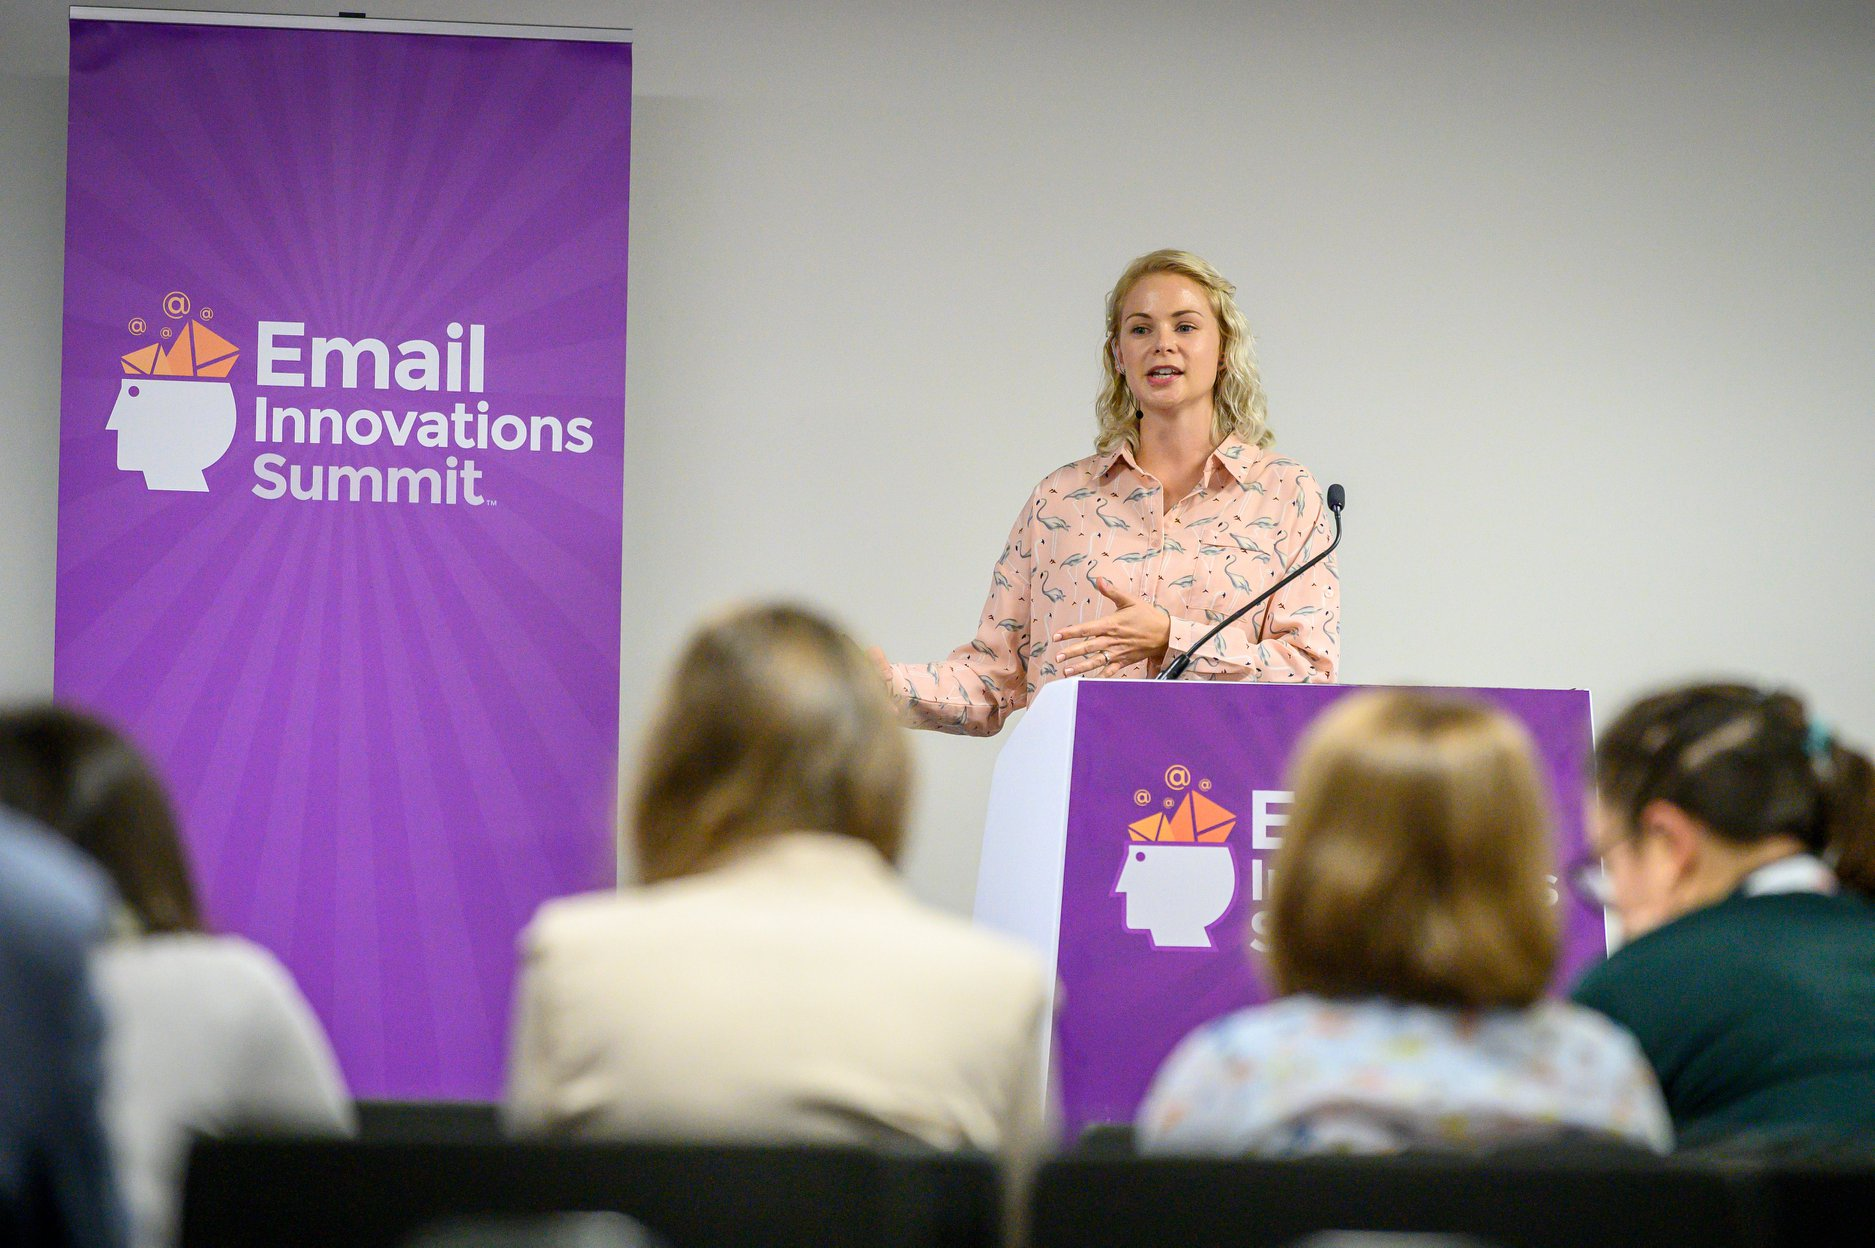 Jenna delivering a talk at the Email Innovations Summit